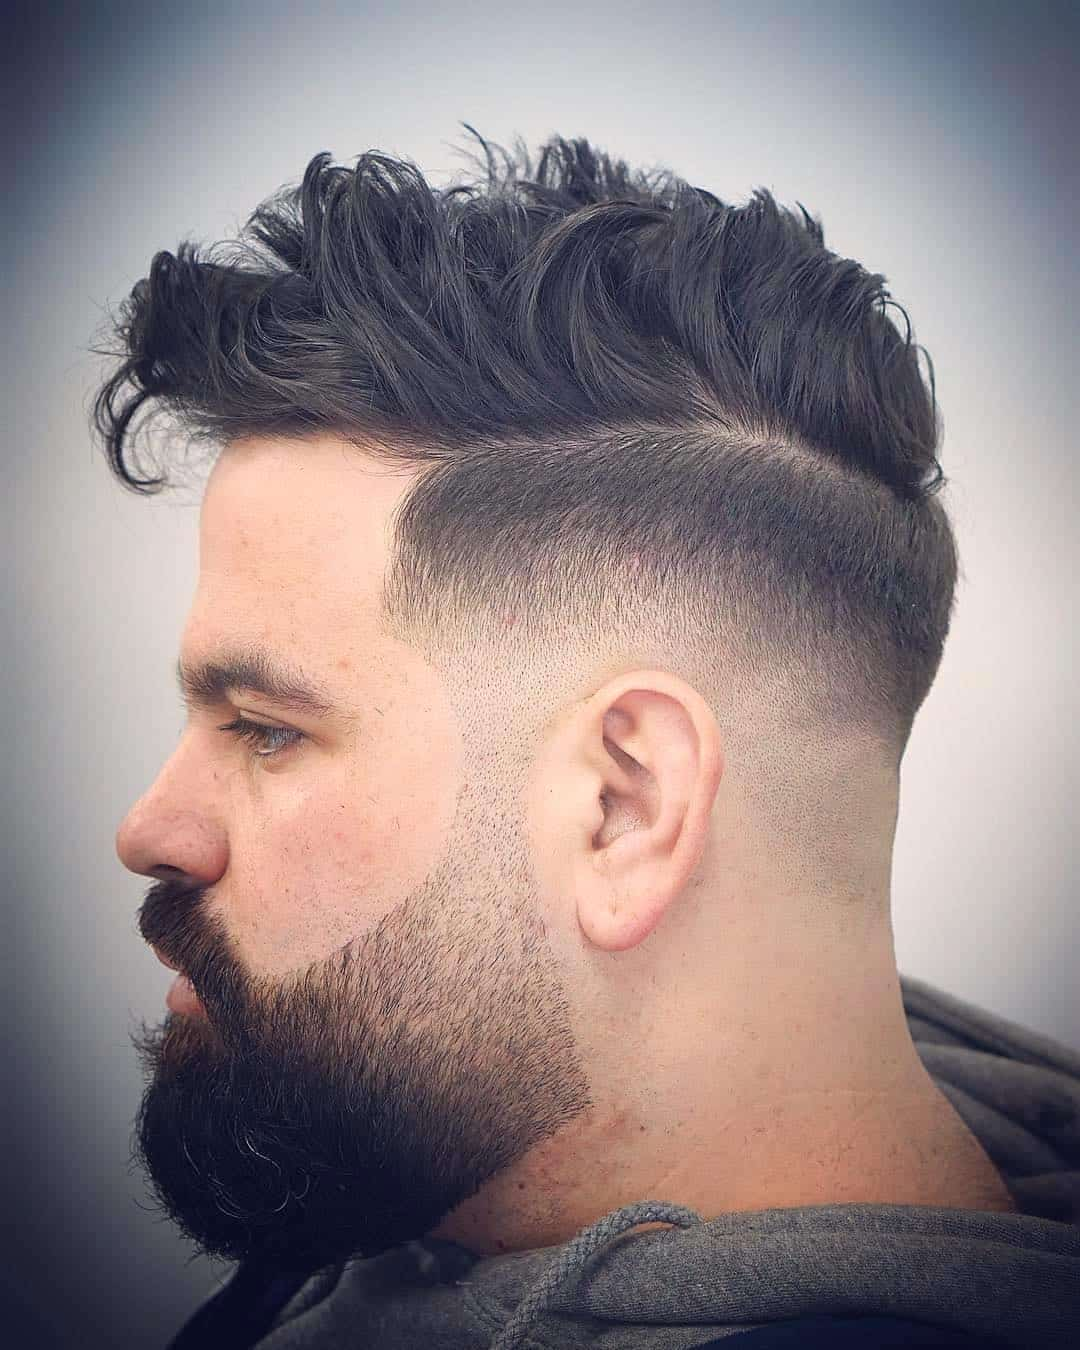 25+ New Best Cool Men Haircuts 2020 - 2HairStyle